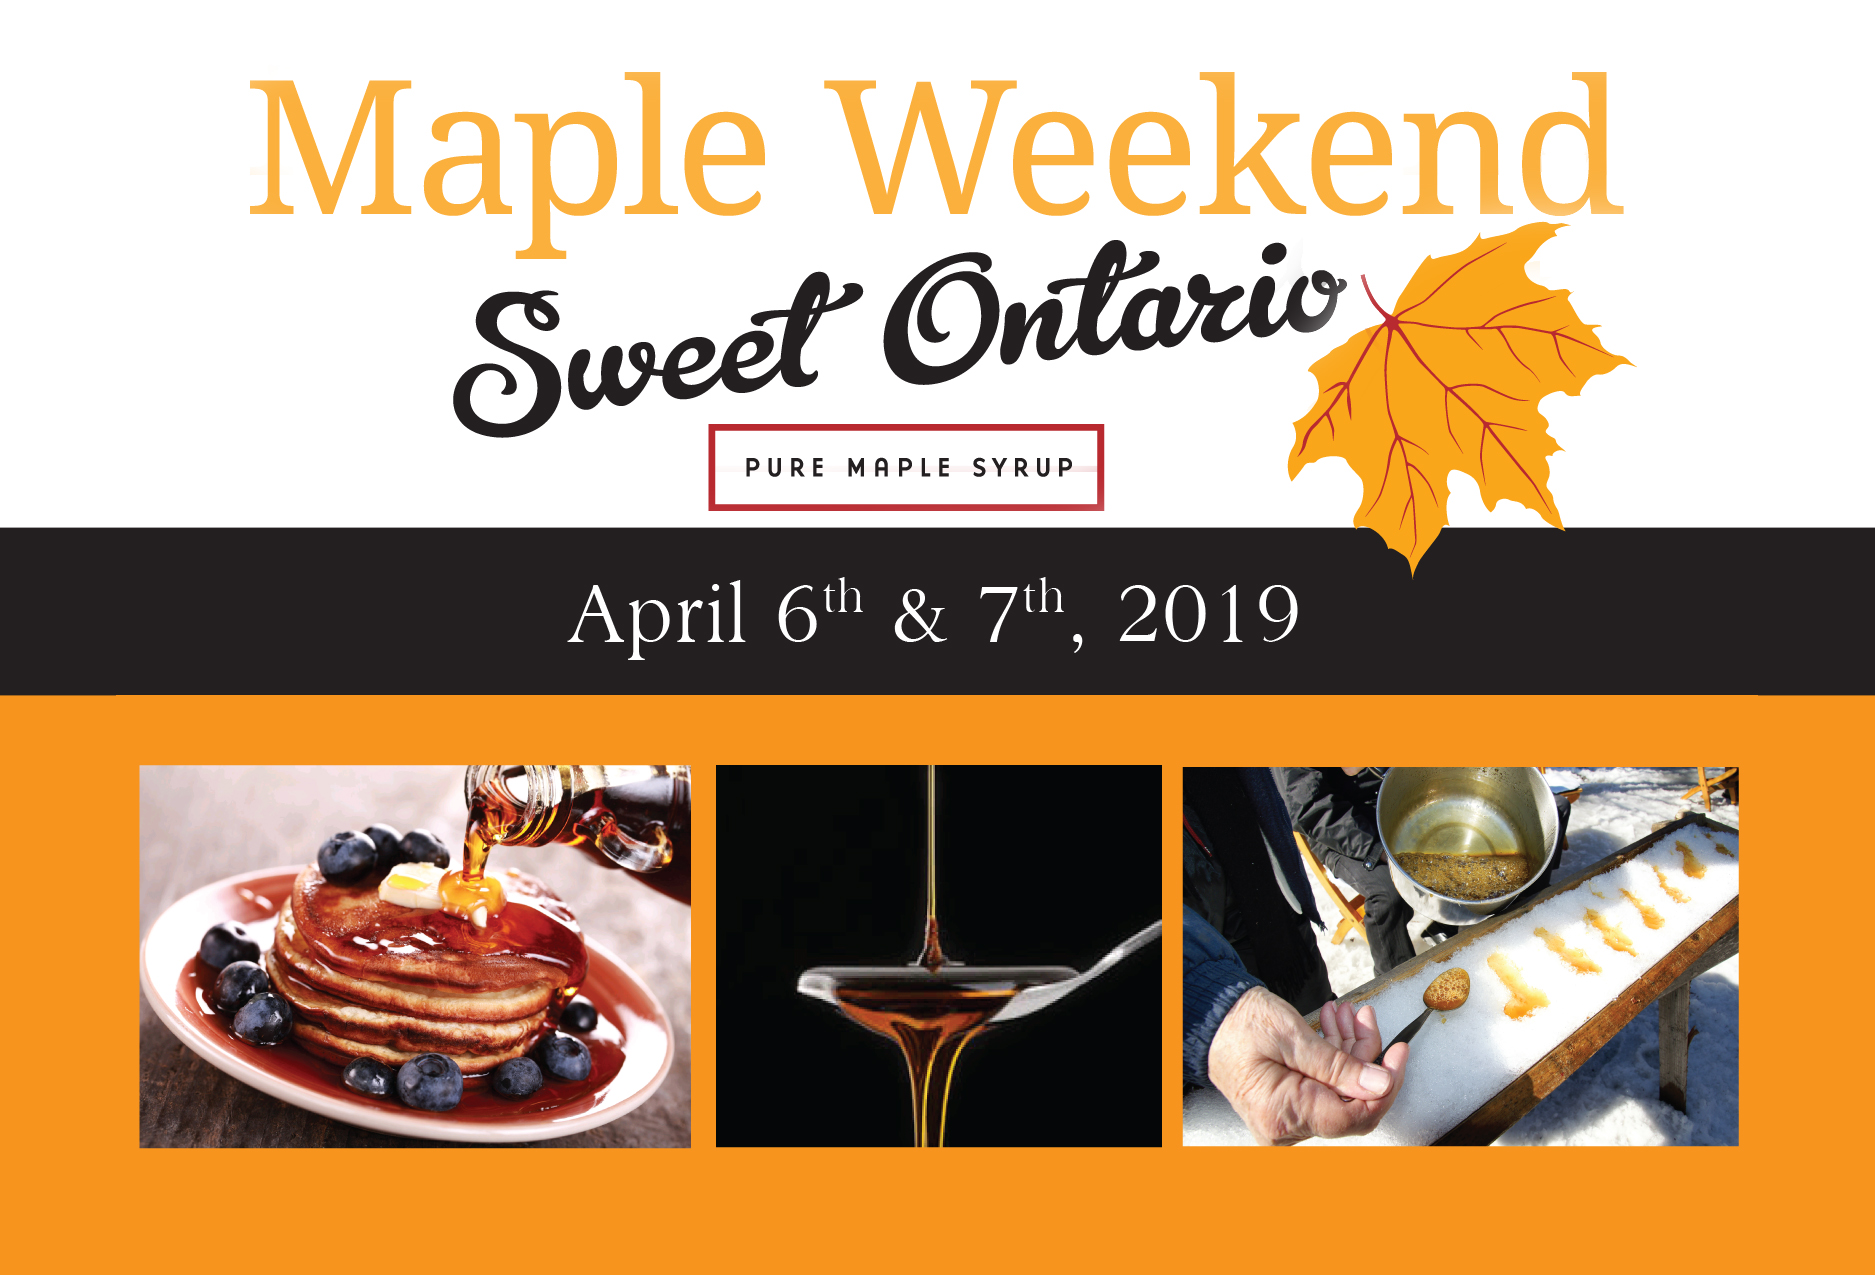 AD Tourism Simcoe County - MAPLE WEEKEND - SWEET ONTARIO